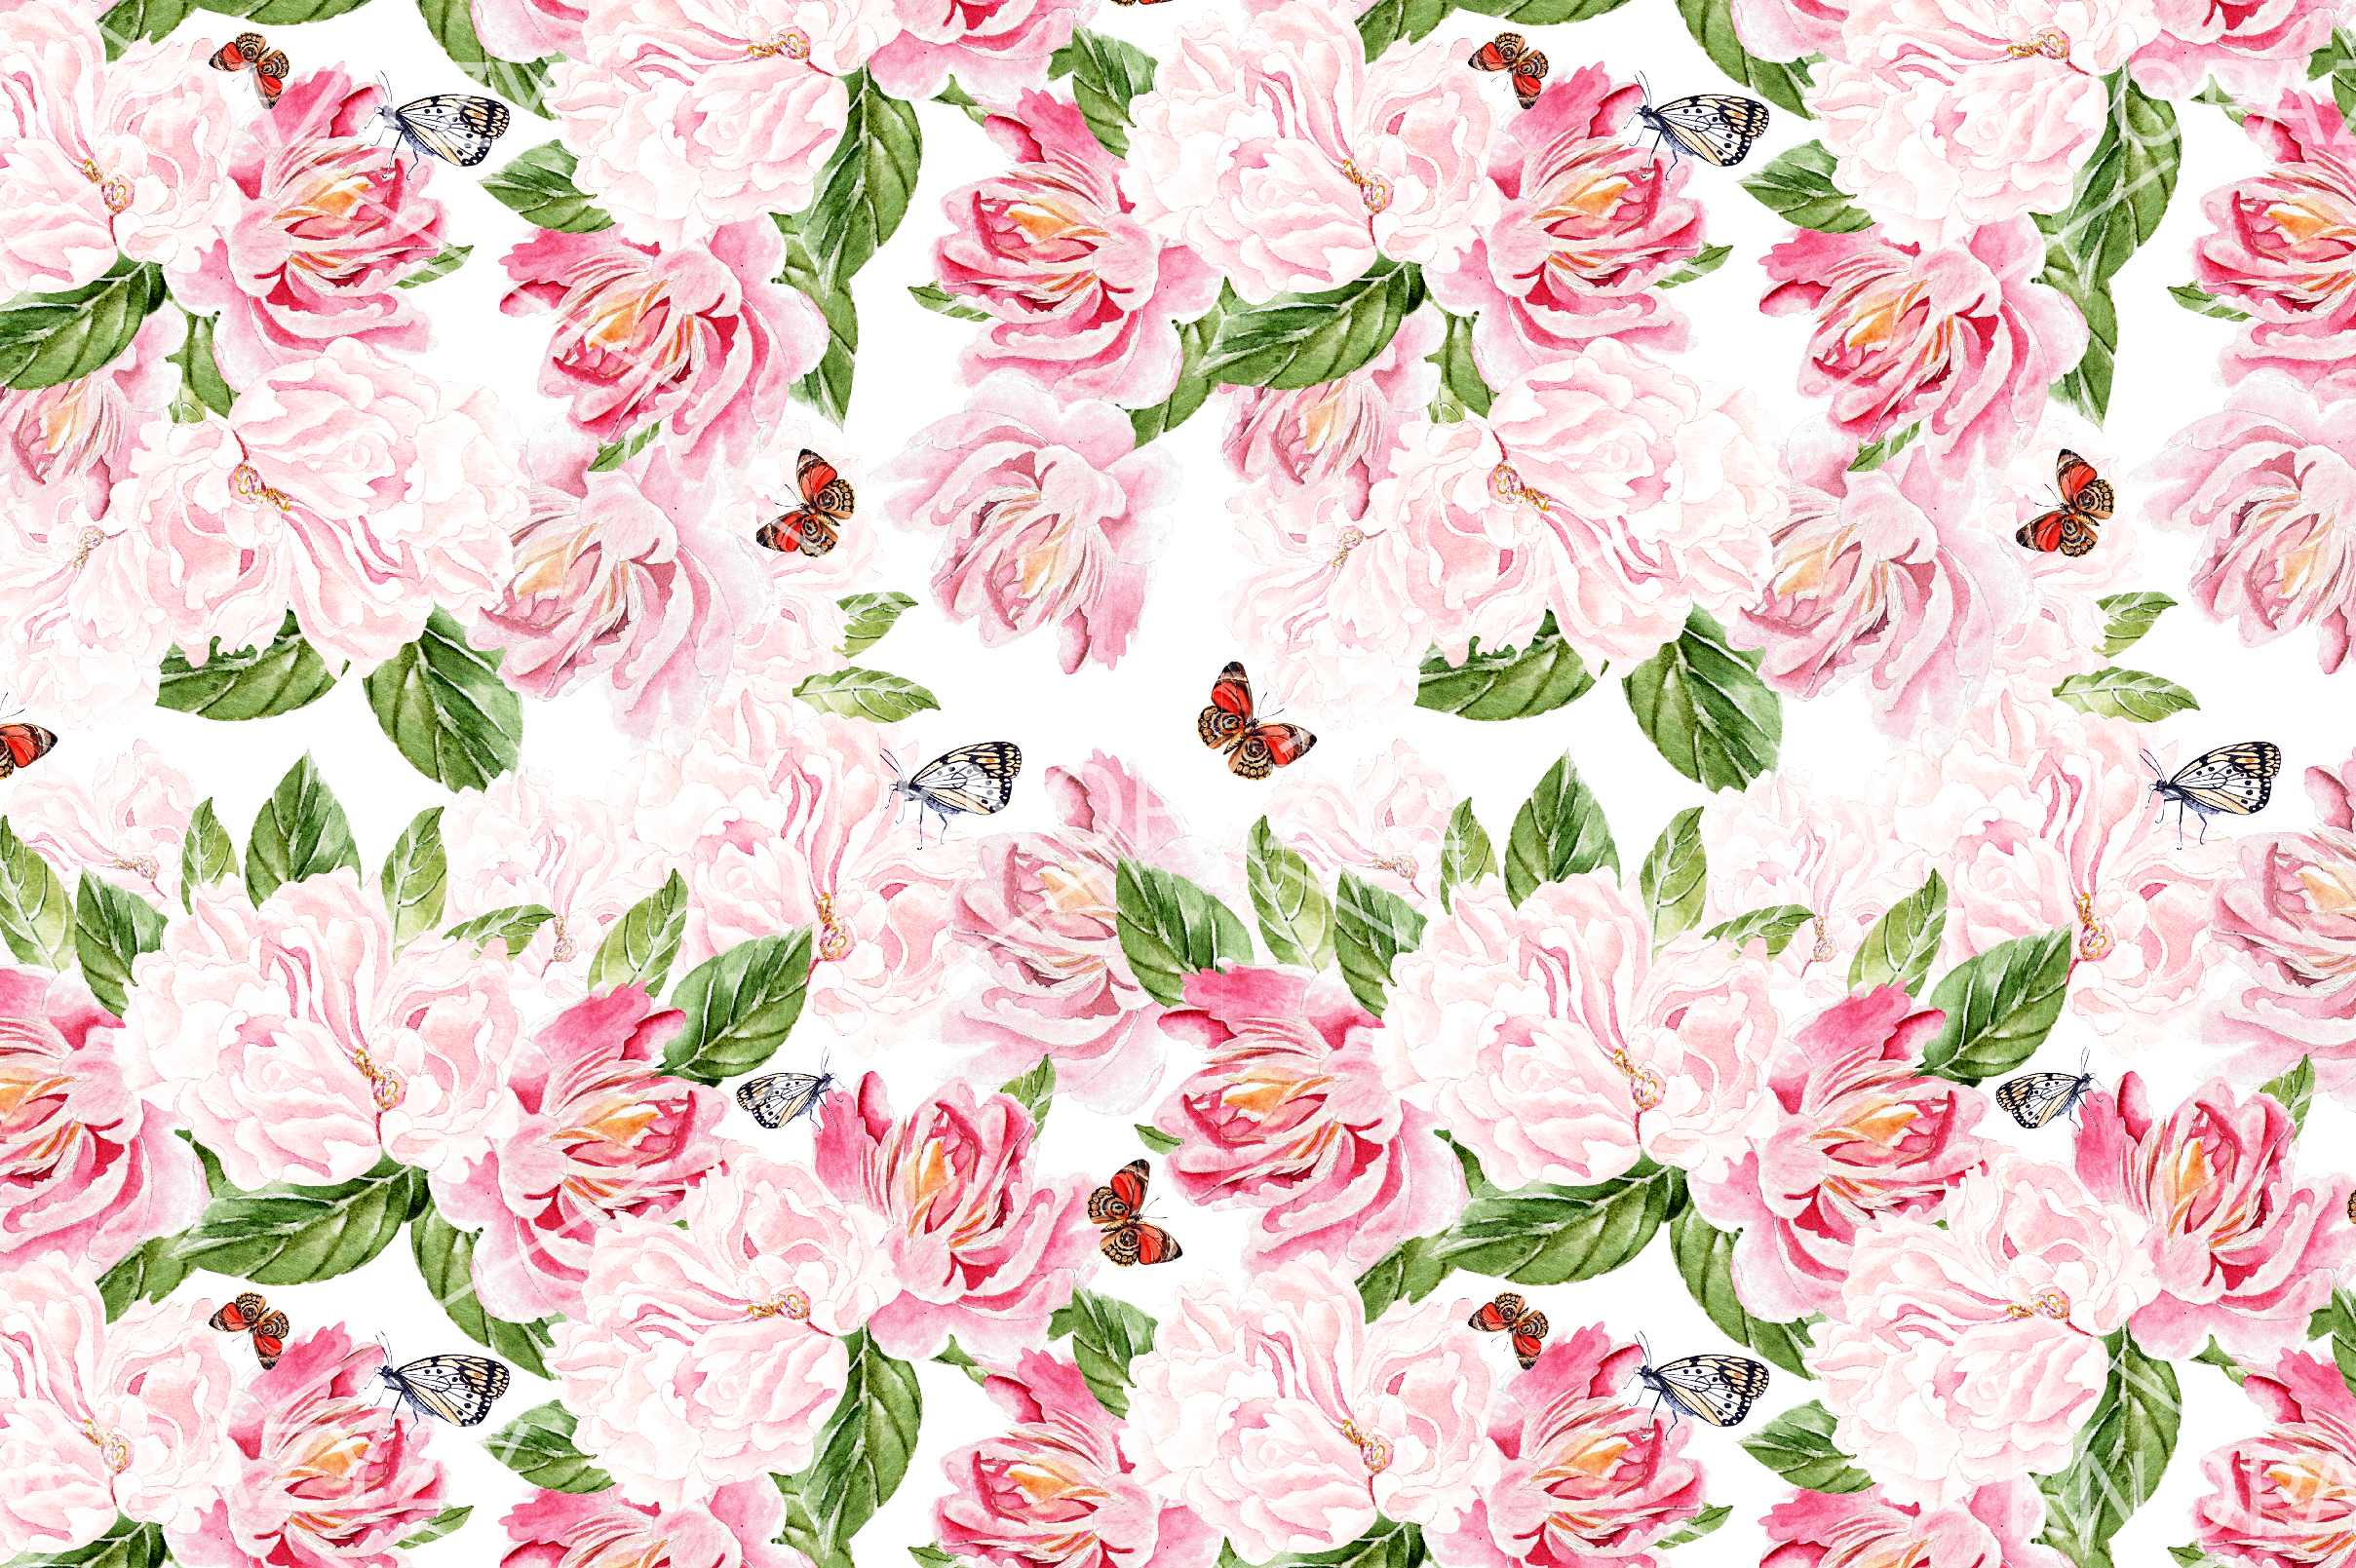 10 Hand Drawn Watercolor Pattern example image 3